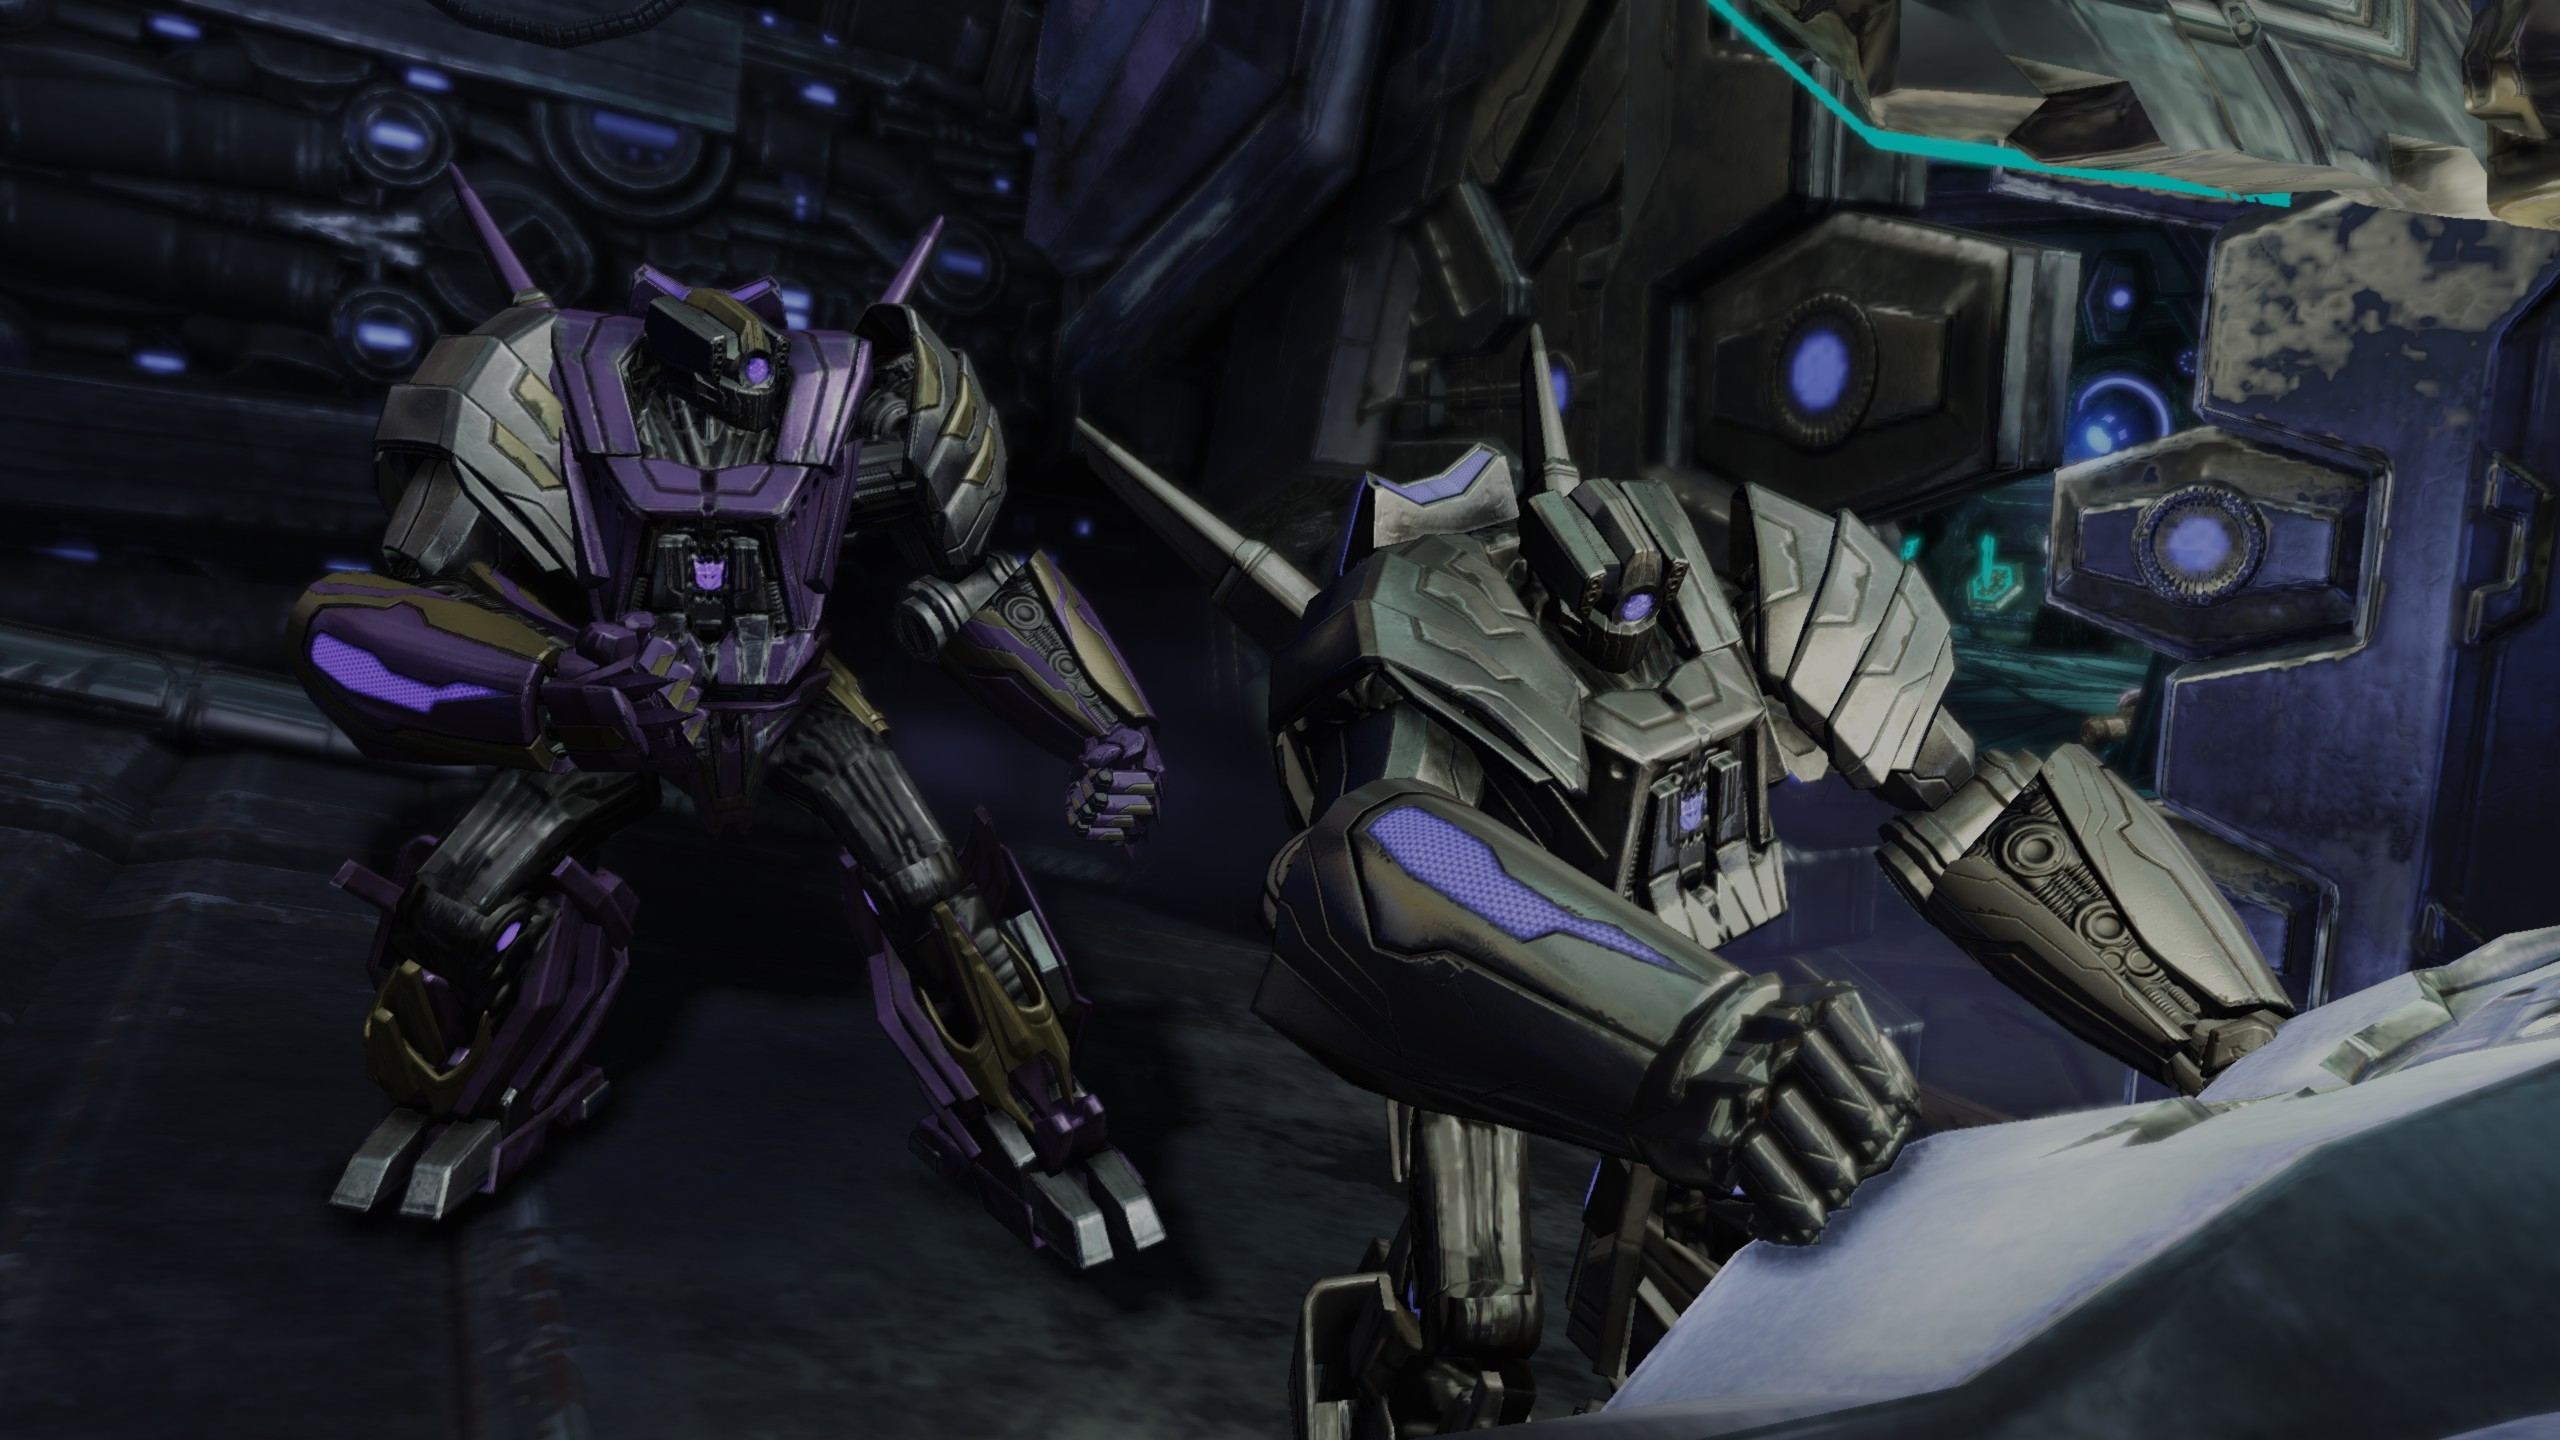 Res: 2560x1440, Transformers: Fall of Cybertron, Decepticons wallpaper and background